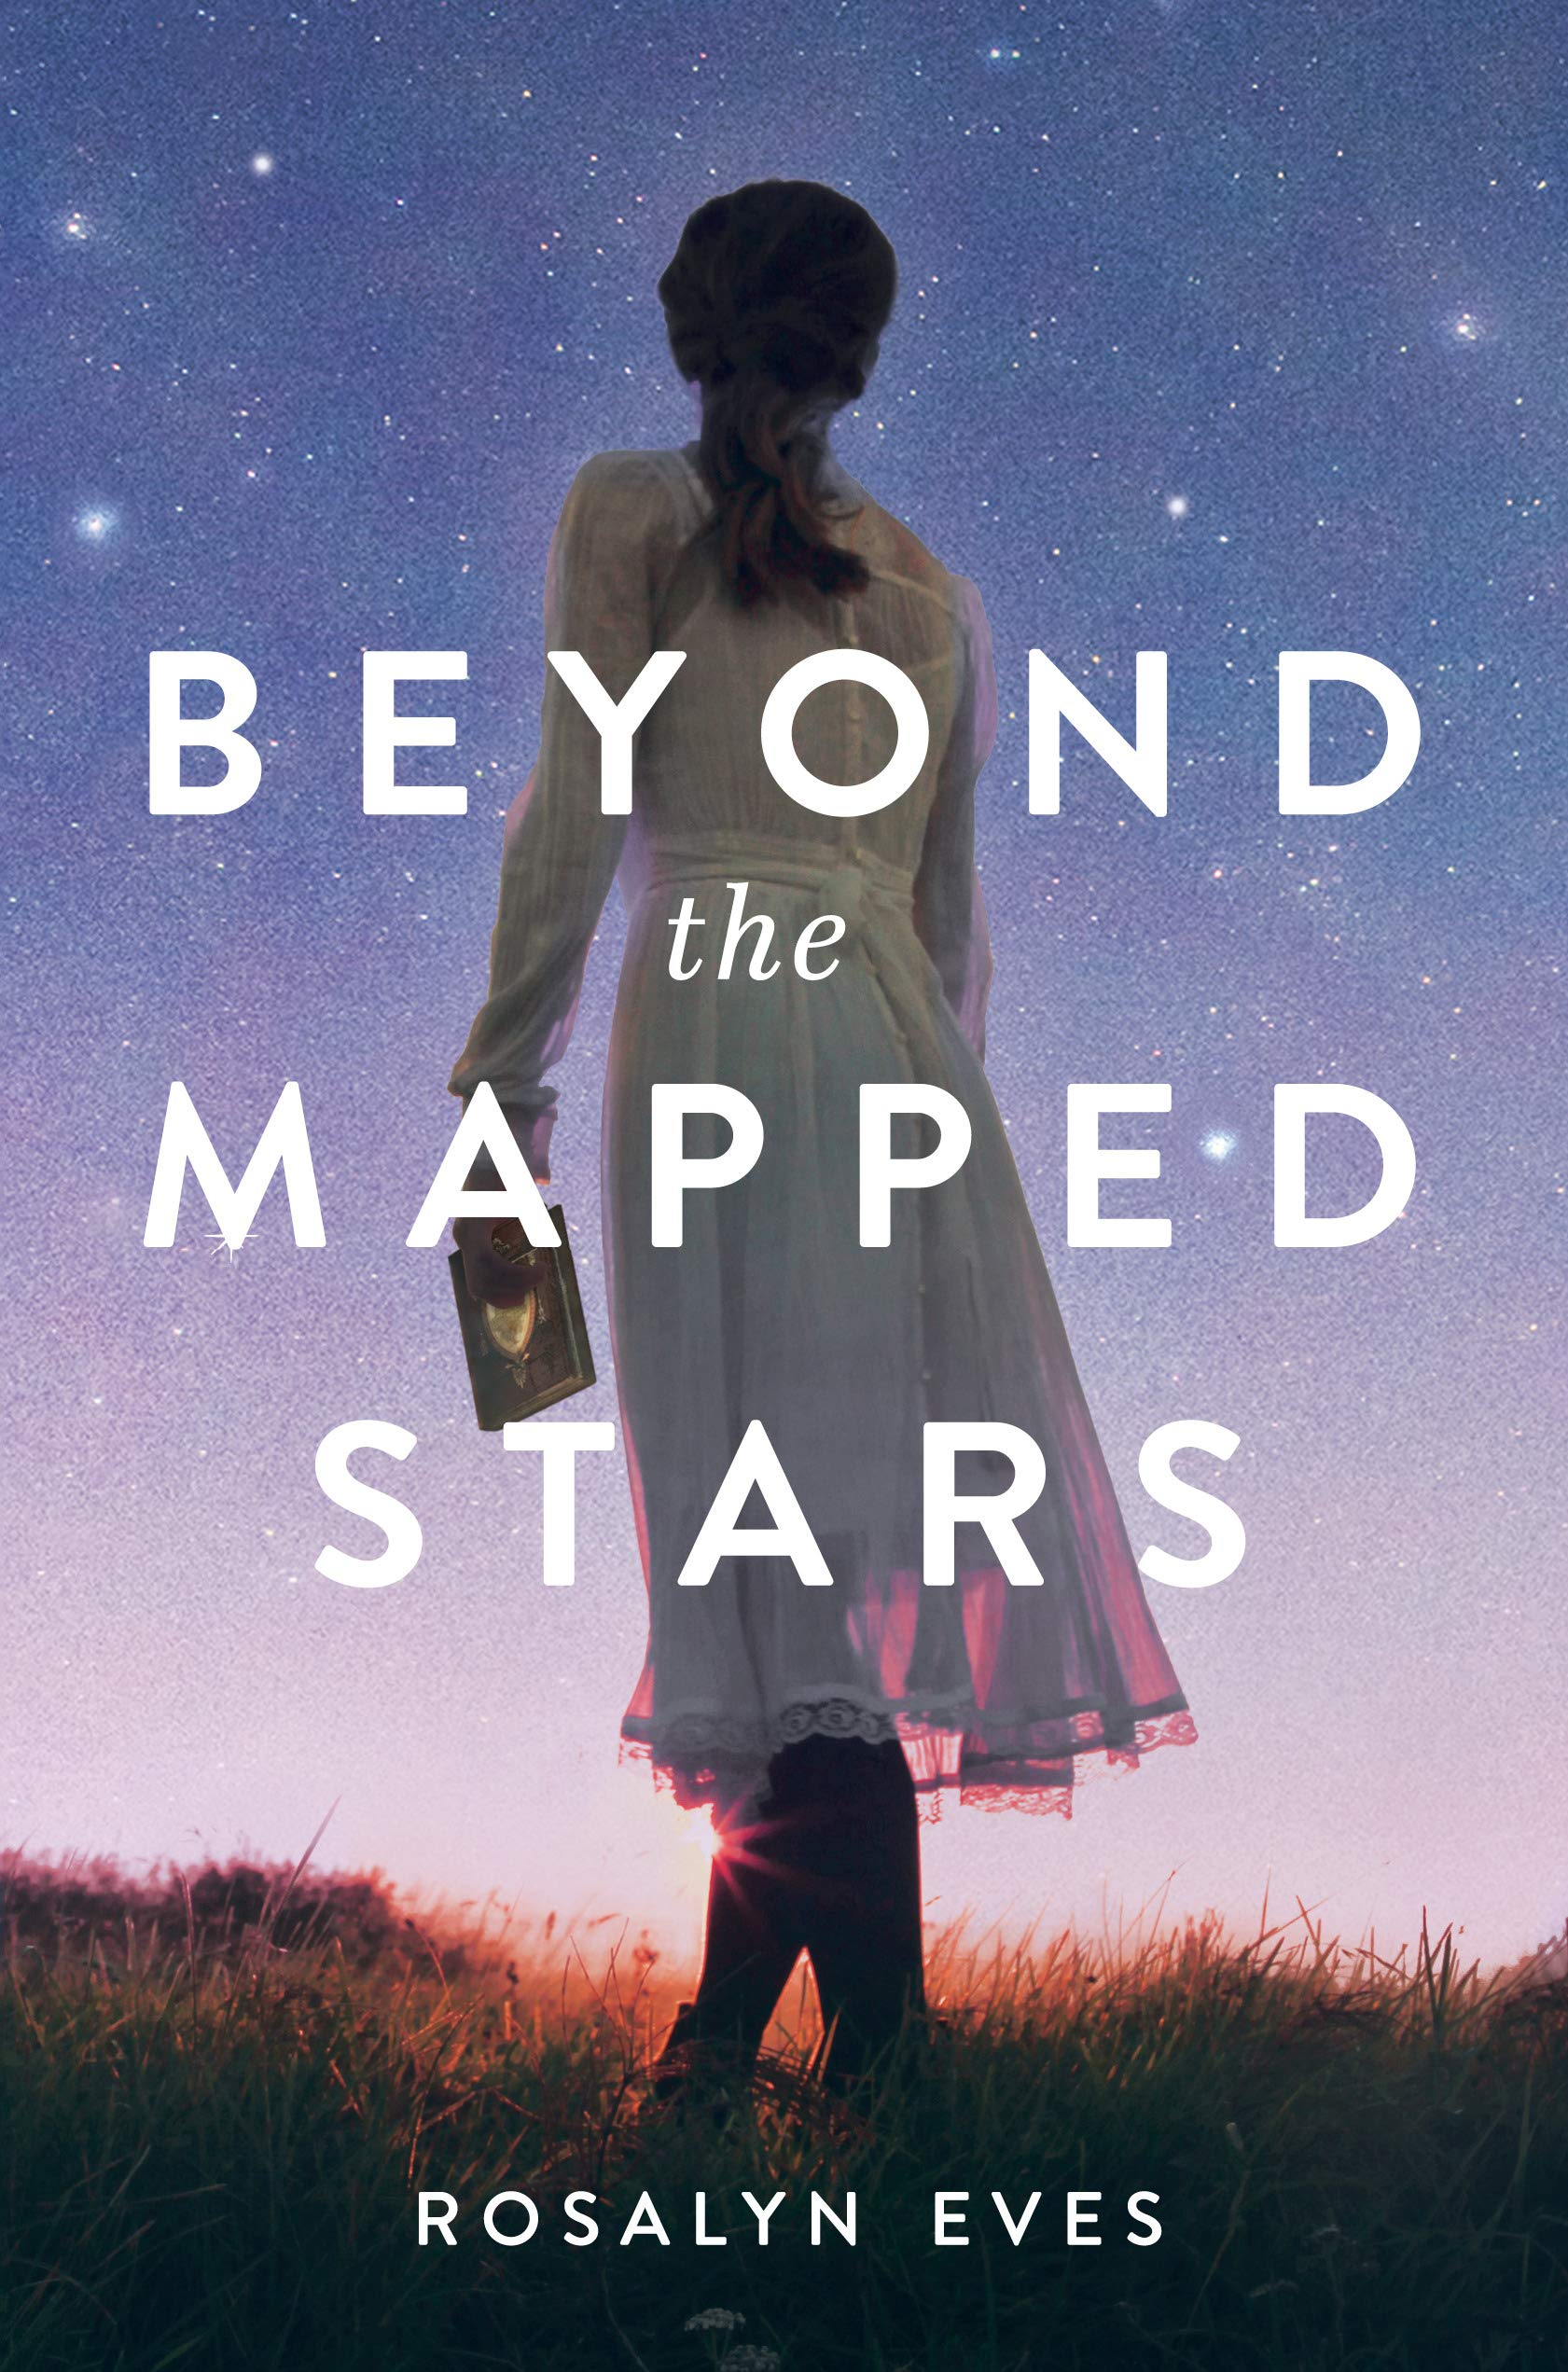 Amazon.com: Beyond the Mapped Stars: 9781984849557: Eves, Rosalyn: Books